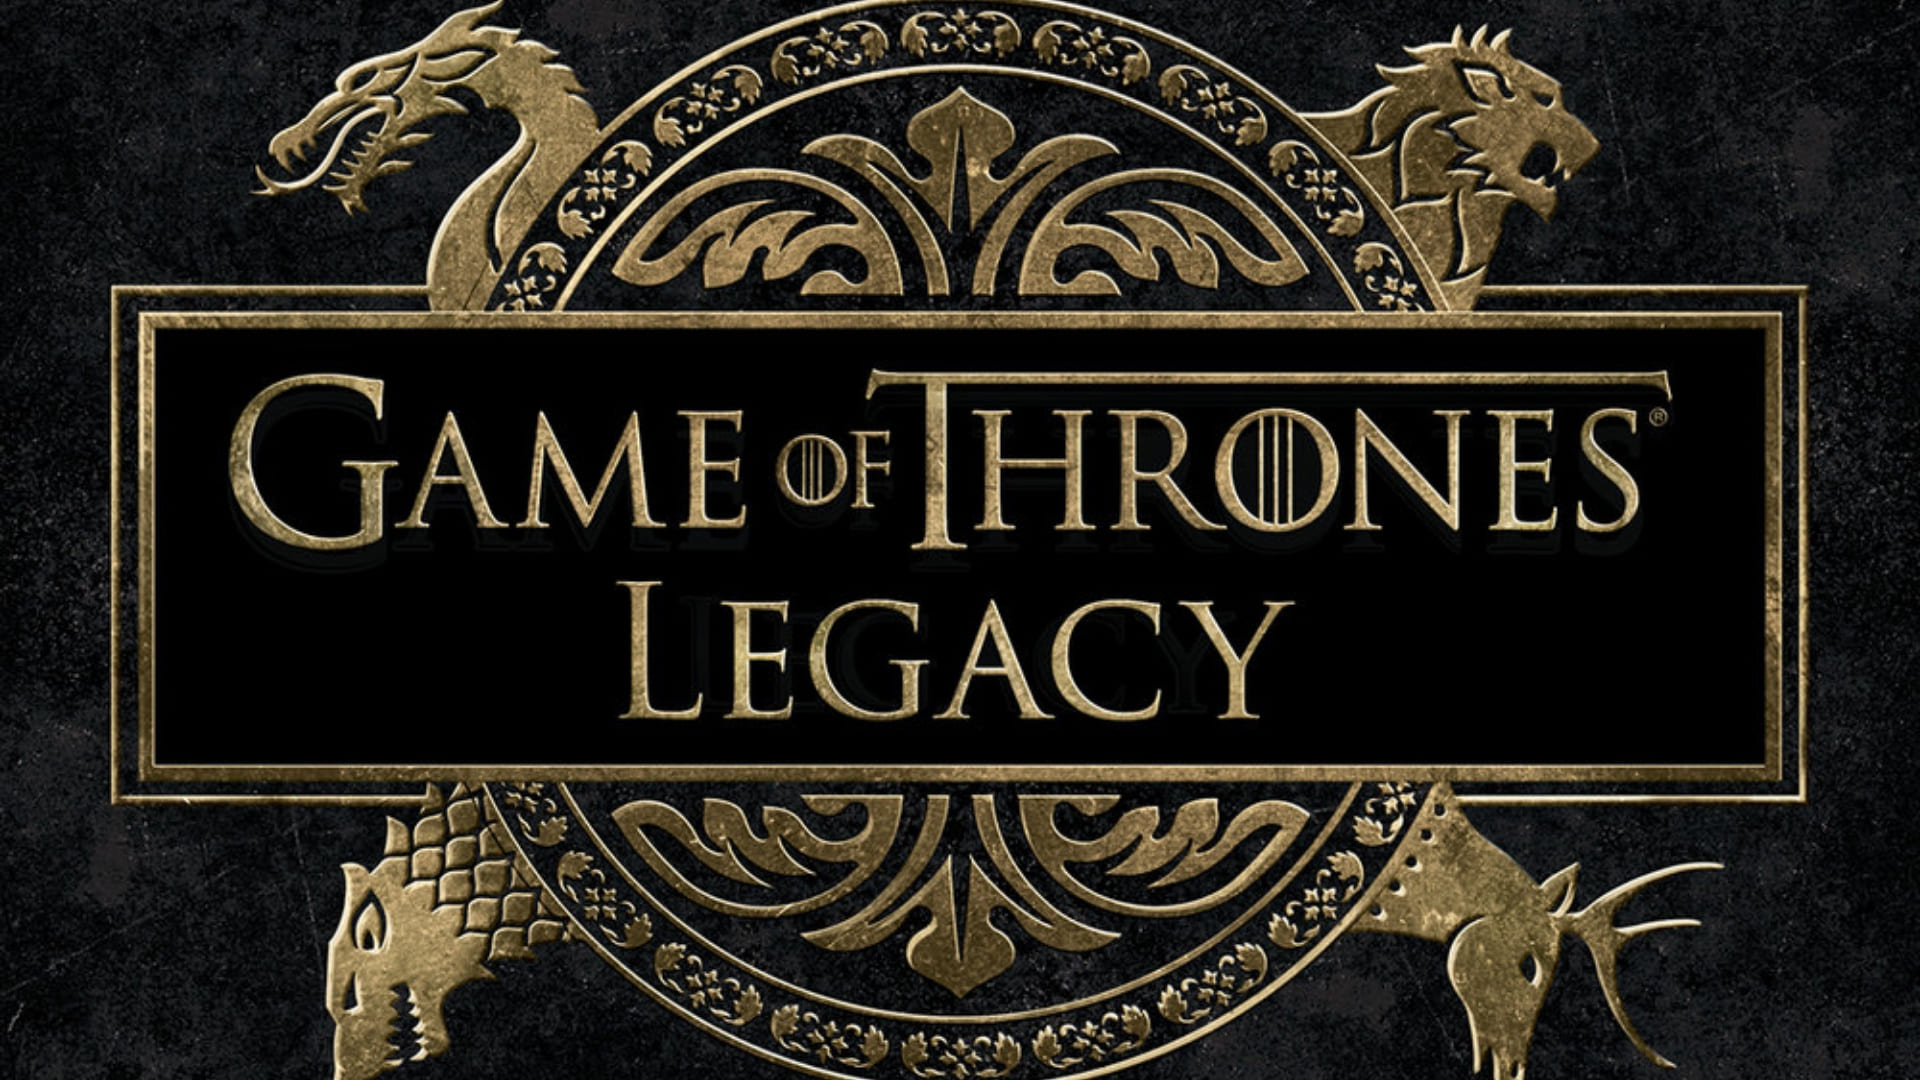 Game of thrones cool pictures